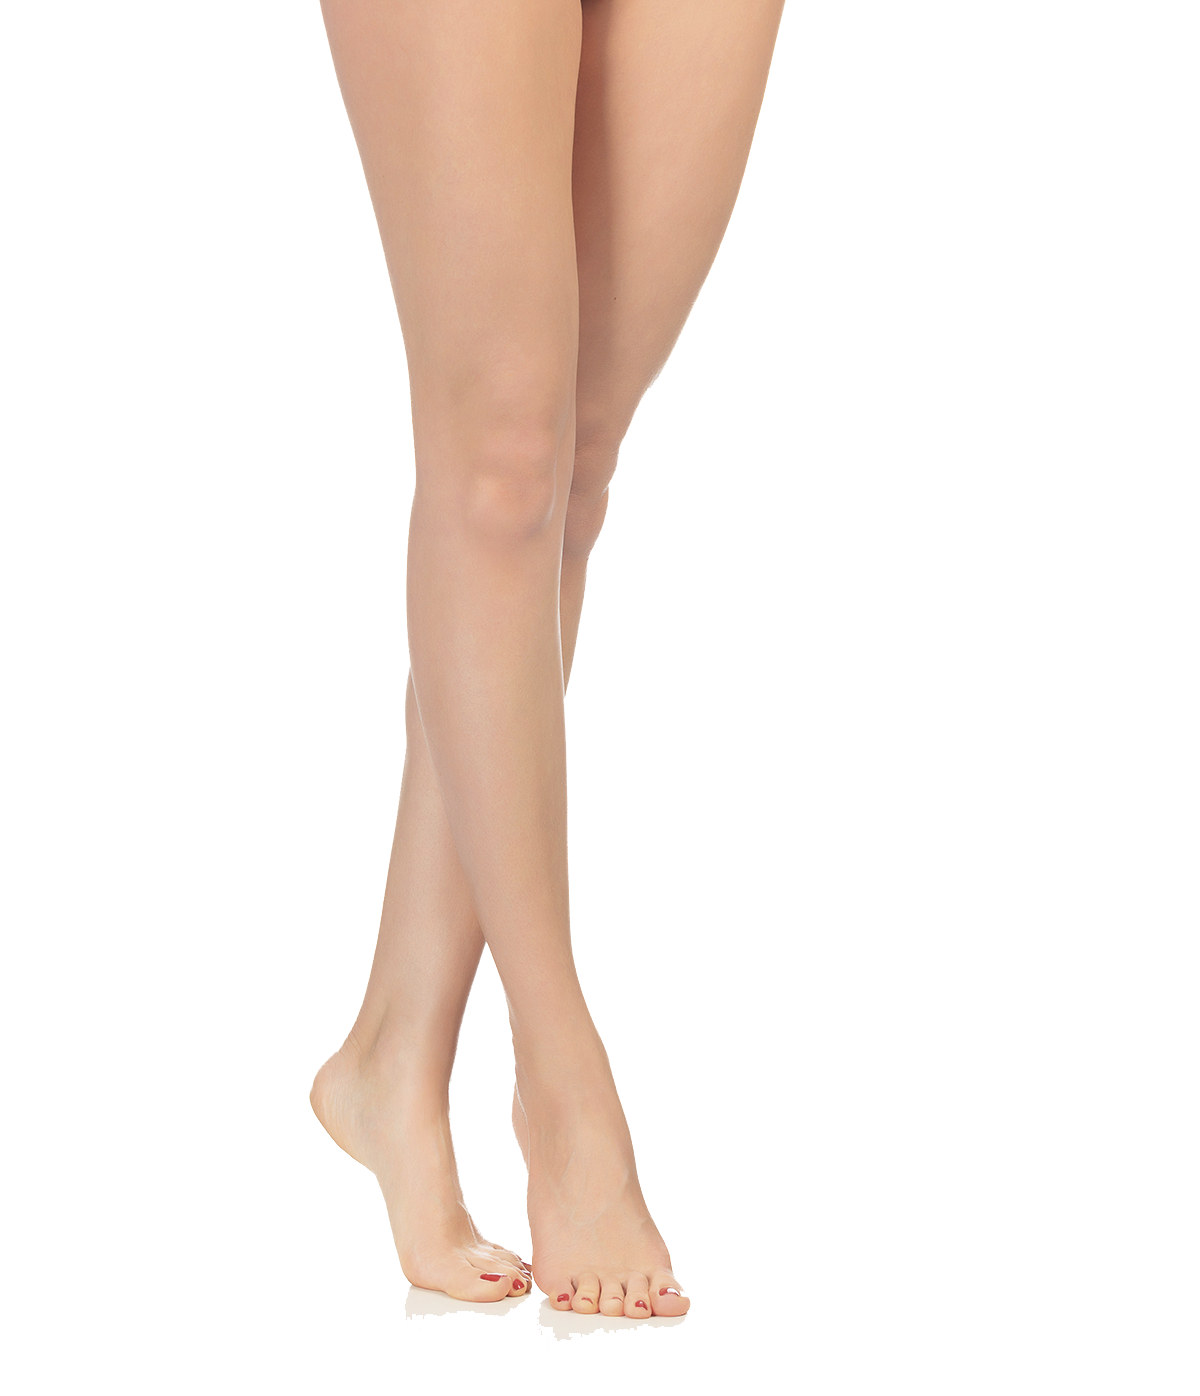 Image female leg hd. Woman legs png clip art freeuse library